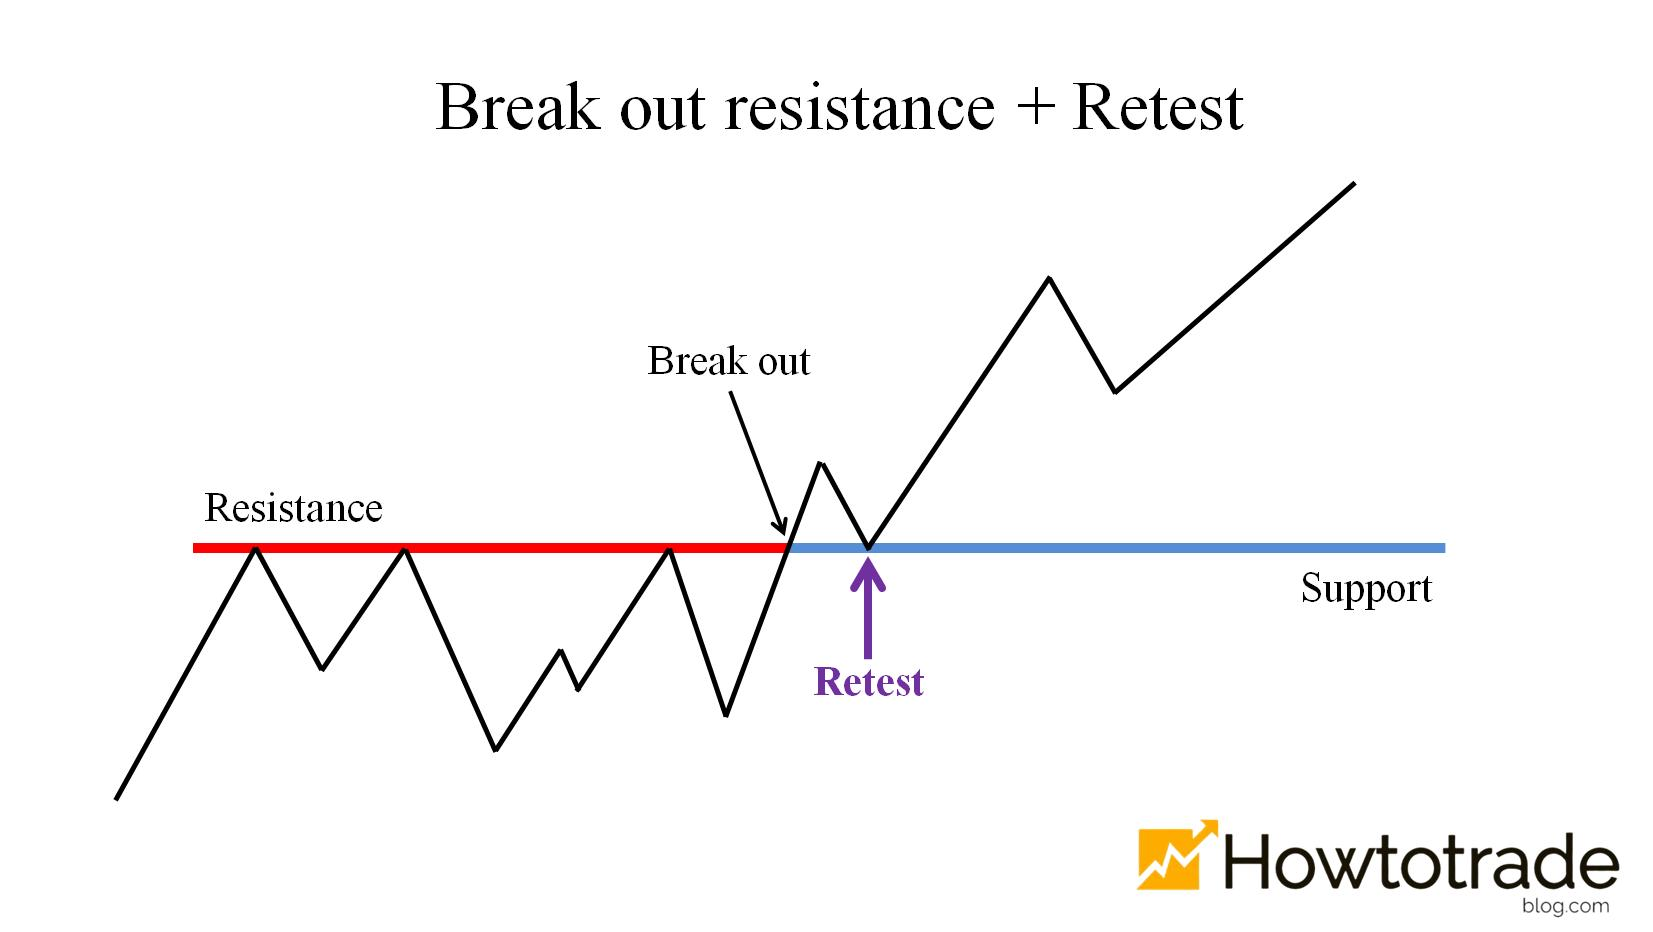 The price breaks out of the resistance and retests